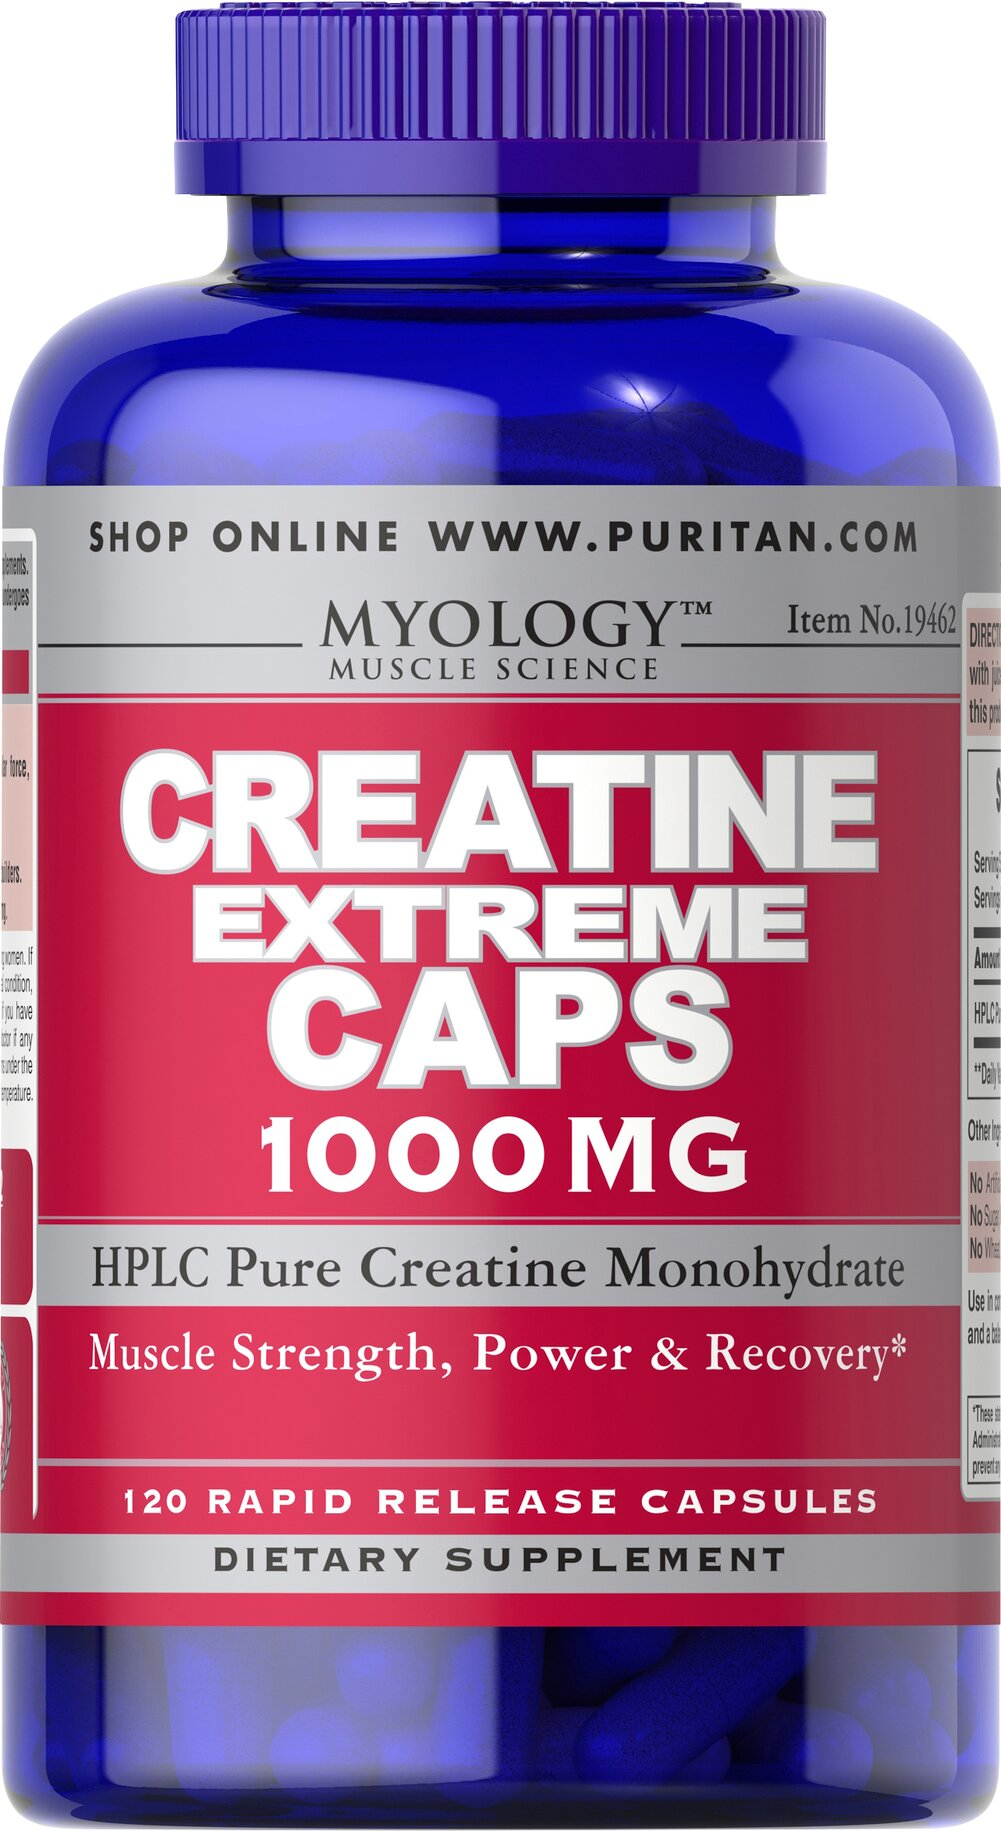 Creatine Extreme 1000 mg <p>Enhances the ability of muscles to produce higher muscular force, especially during short bouts of maximal exercise.**</p><p>Helps promote athletic performance**</p><p>Excellent supplemental choice for athletes and hardcore bodybuilders.</p><p>Each capsule contains HPLC Pure Creatine Monohydrate 1000 mg.</p> 120 Capsules 1000 mg $19.99